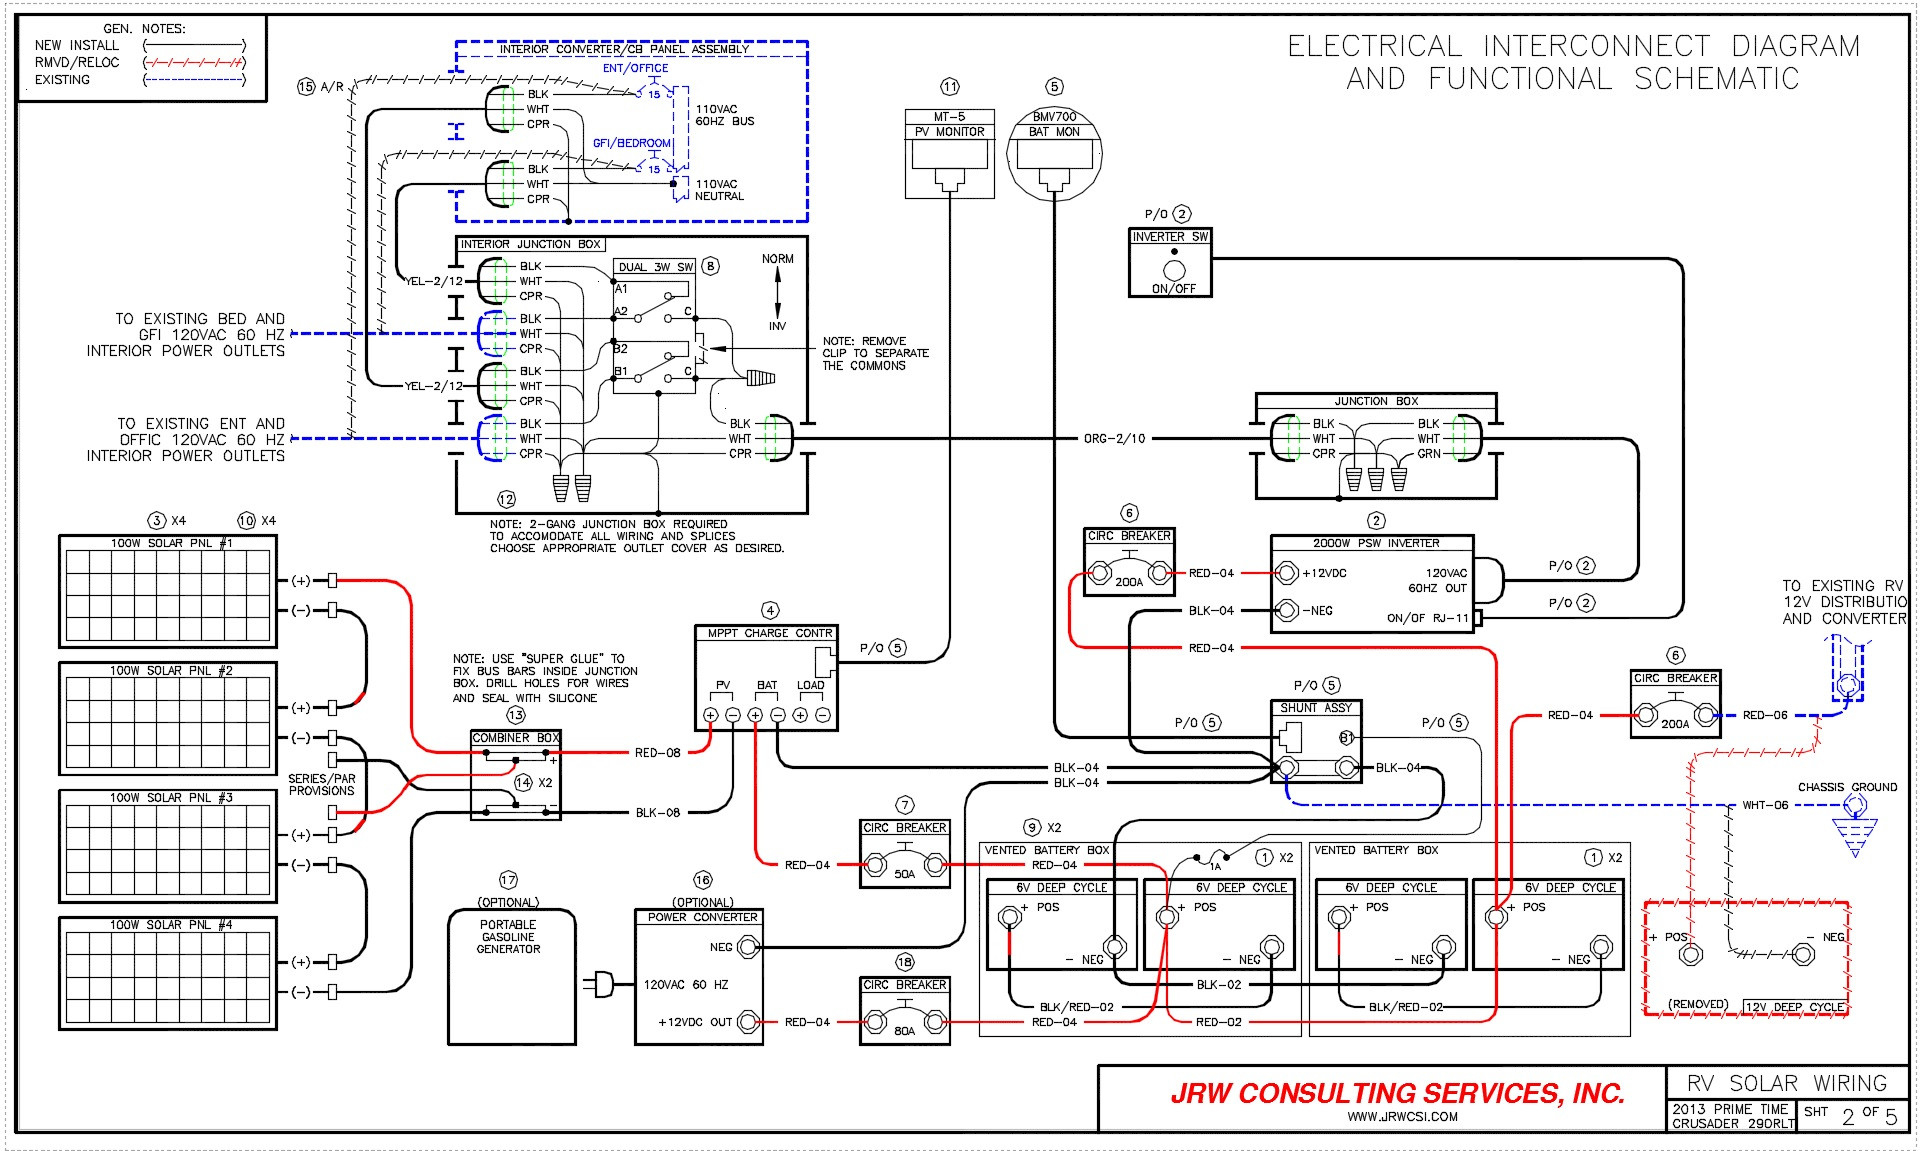 Wiring Diagram For Msi Computer Get Free Image About Wiring Diagram